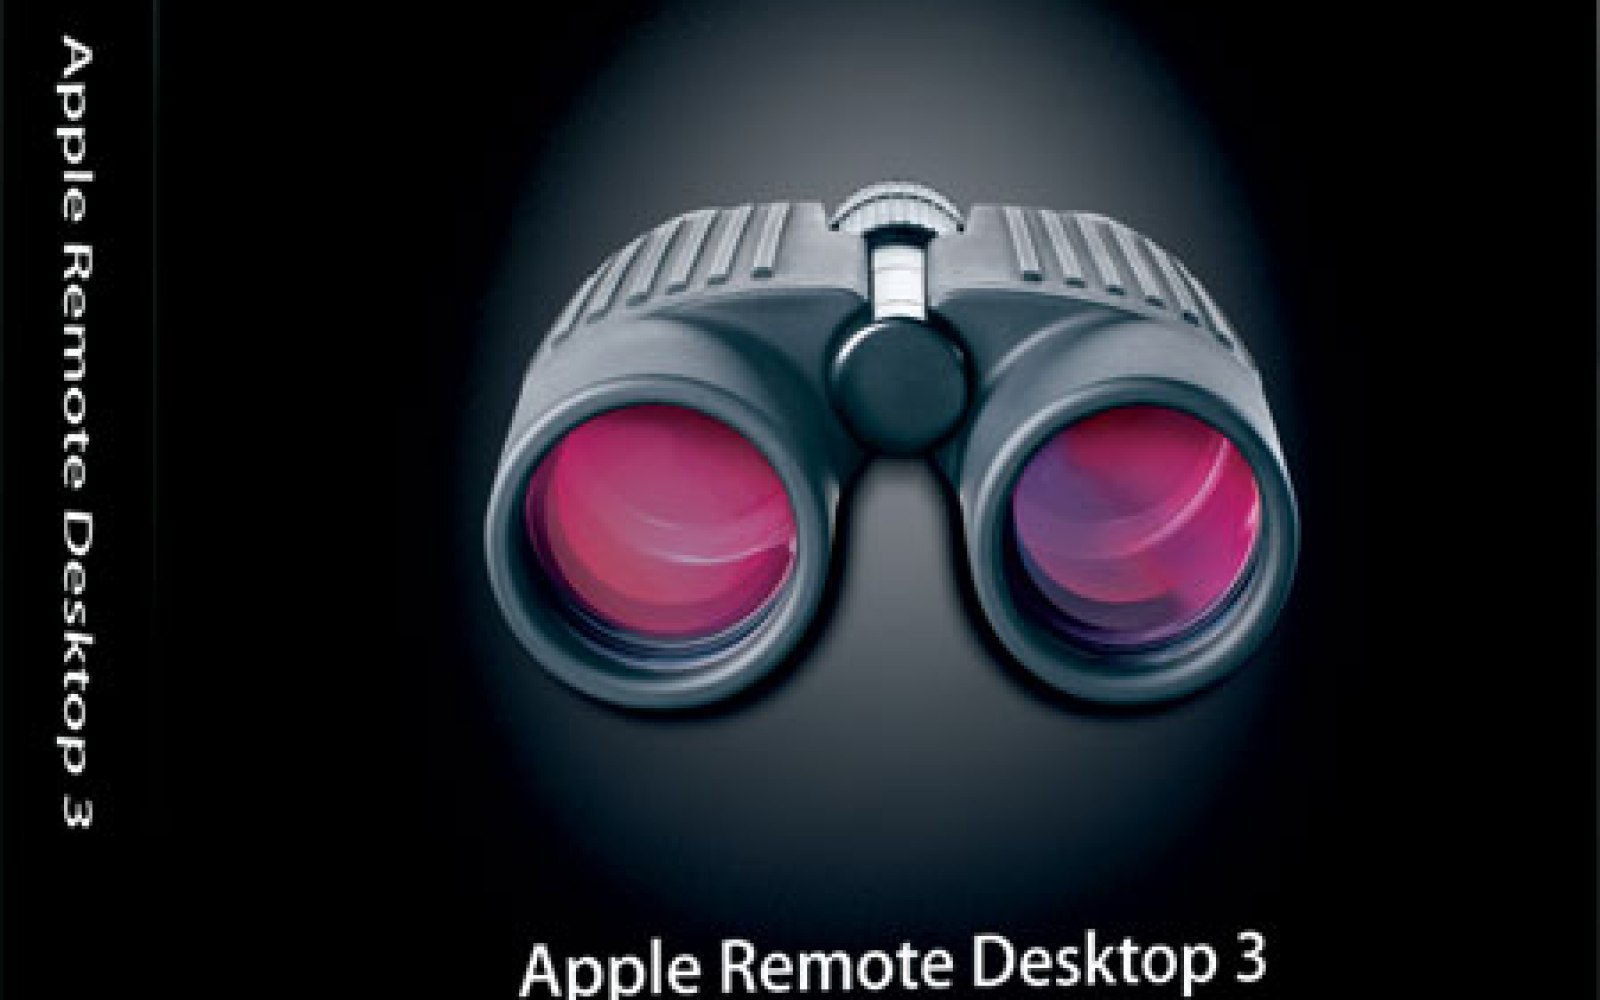 Apple updates Remote Desktop Client and Dashboard Widget with fixes